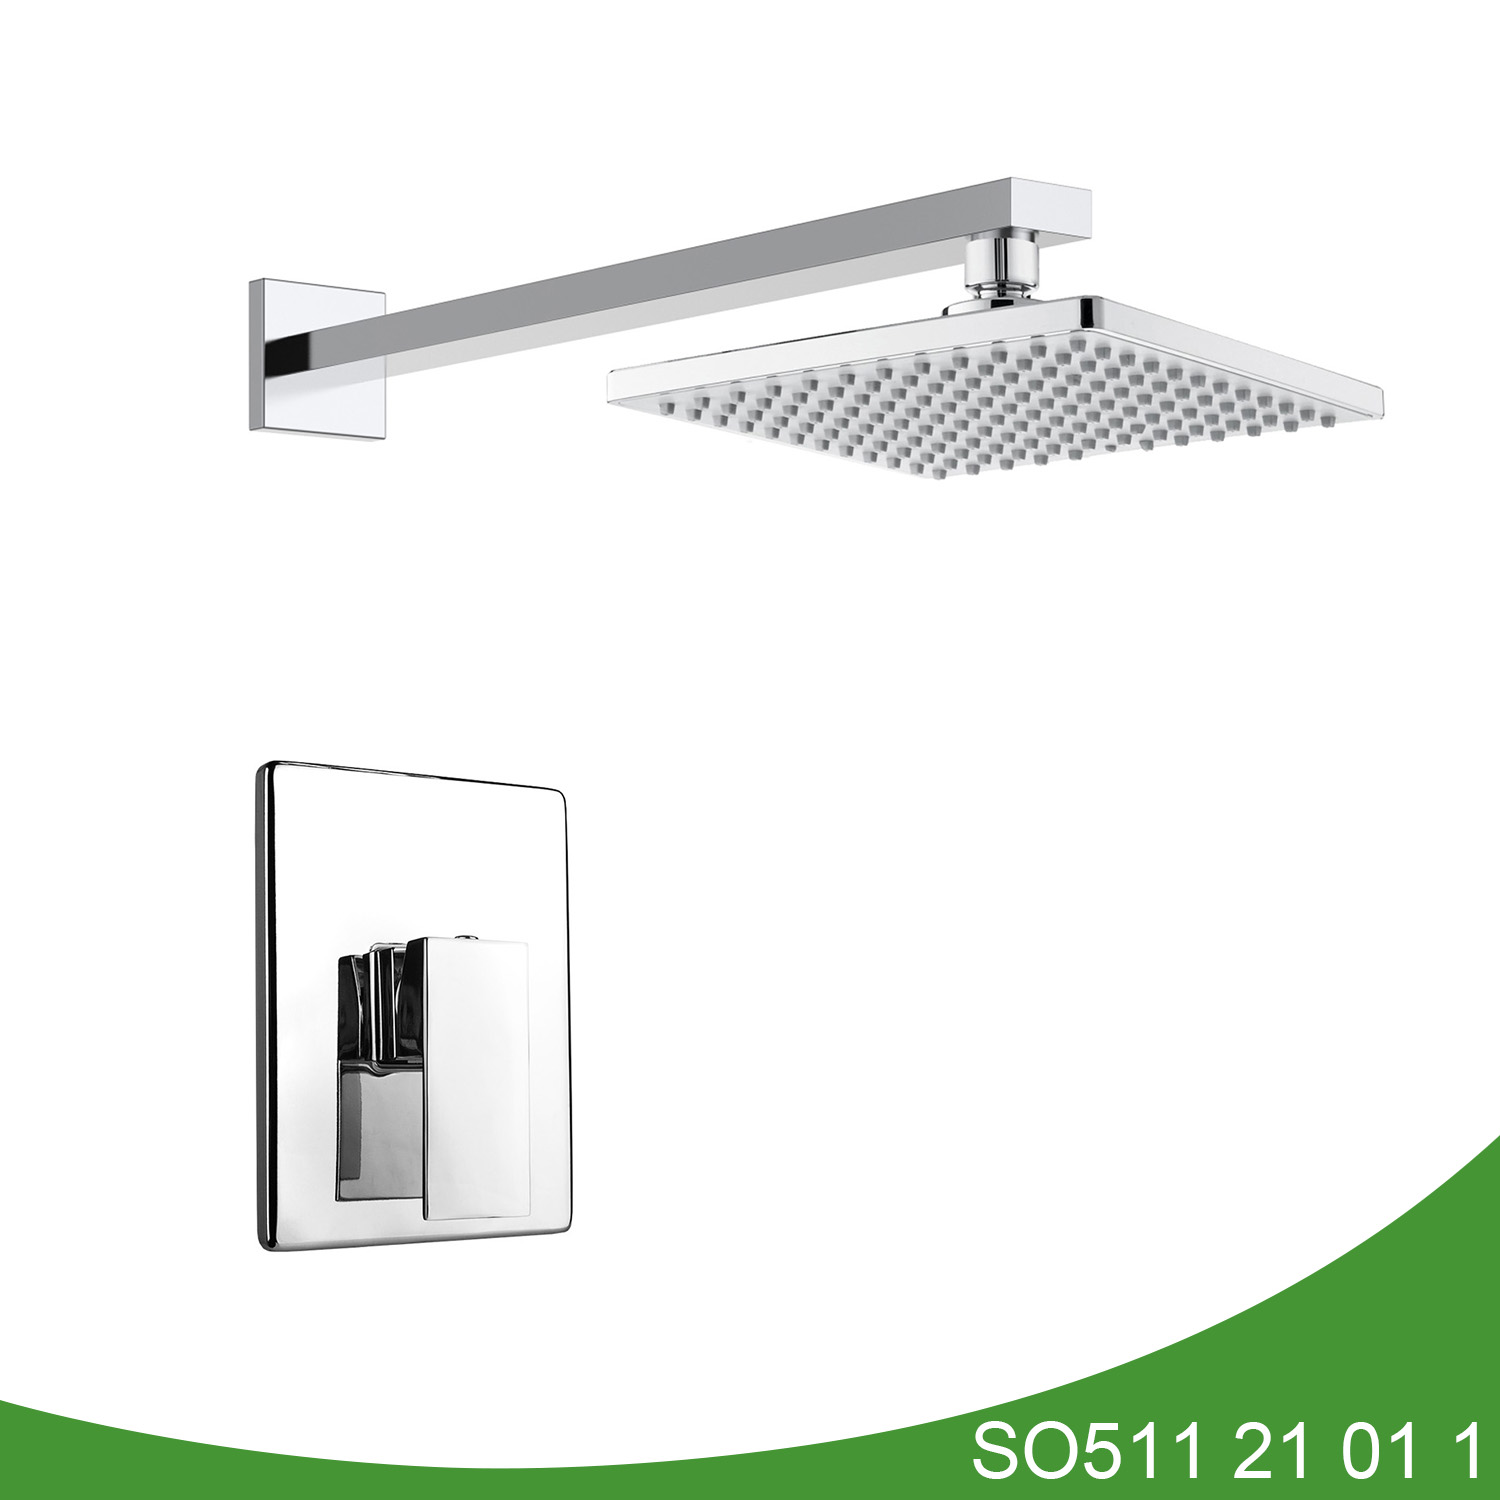 Hot and cold shower set SO511 21 01 1